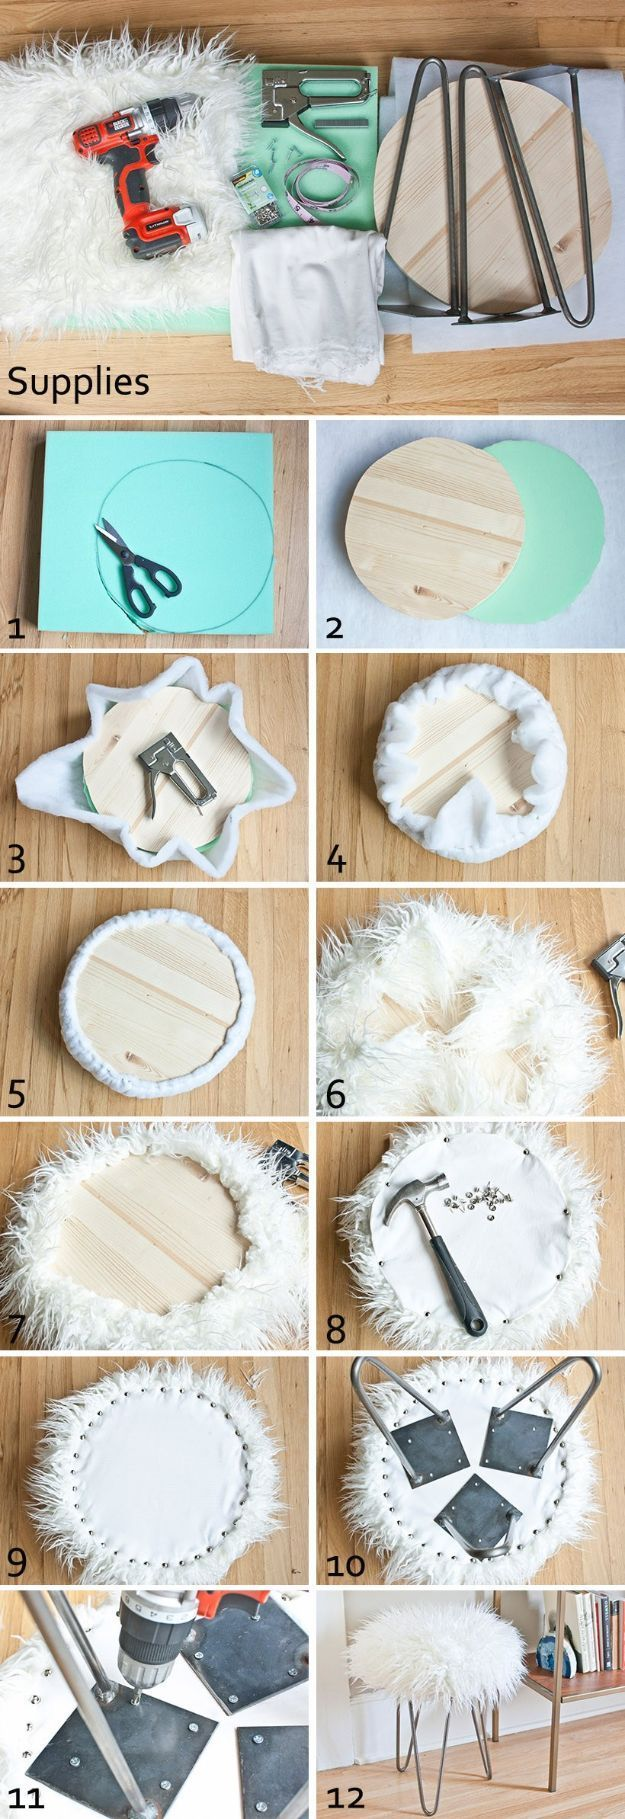 770 best Crochet, Needle Work and crafts images on Pinterest ...